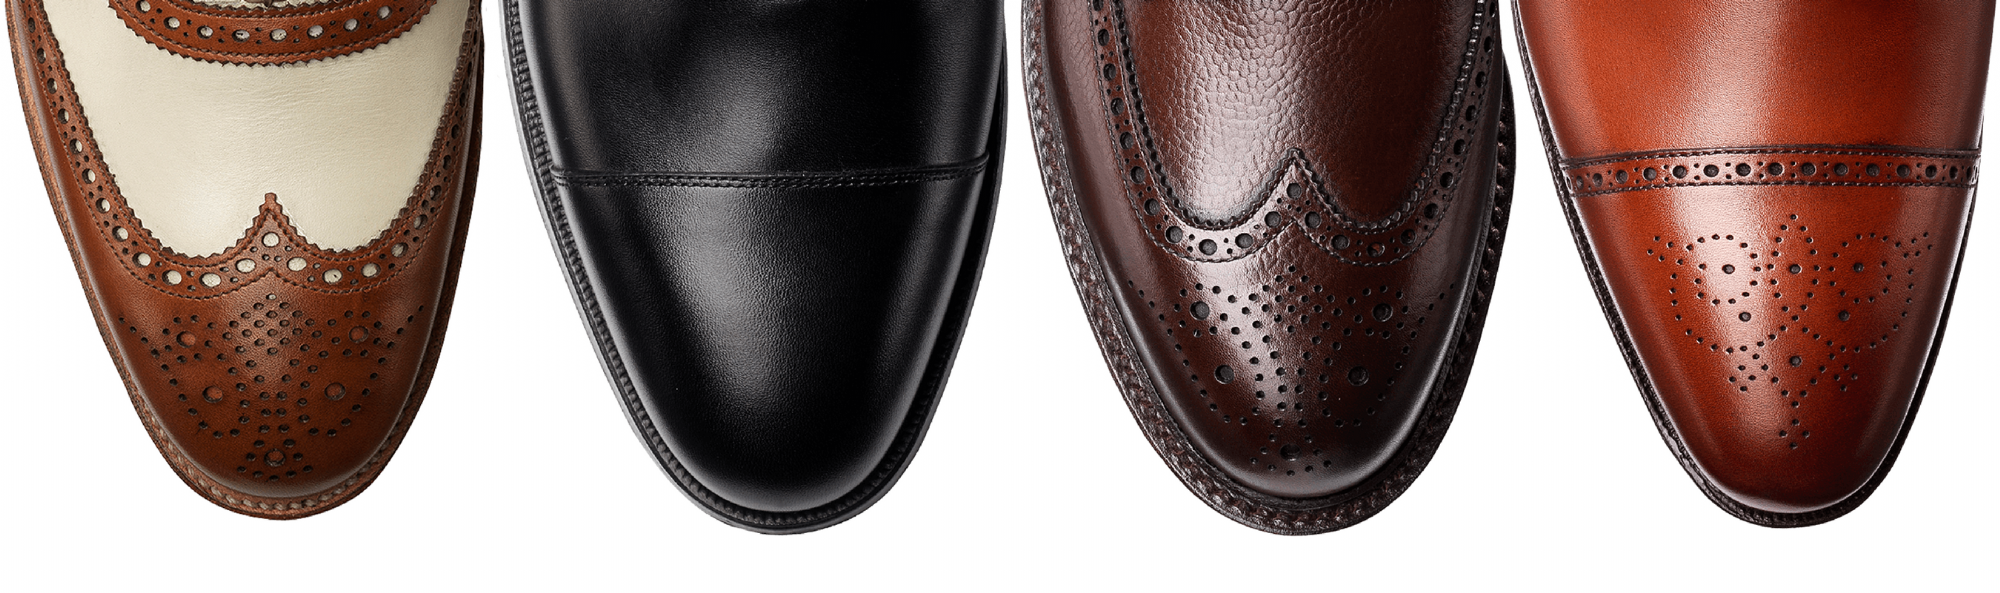 Crockett and Jones men's leather footwear loved byt The Prince of Wales and James Bond